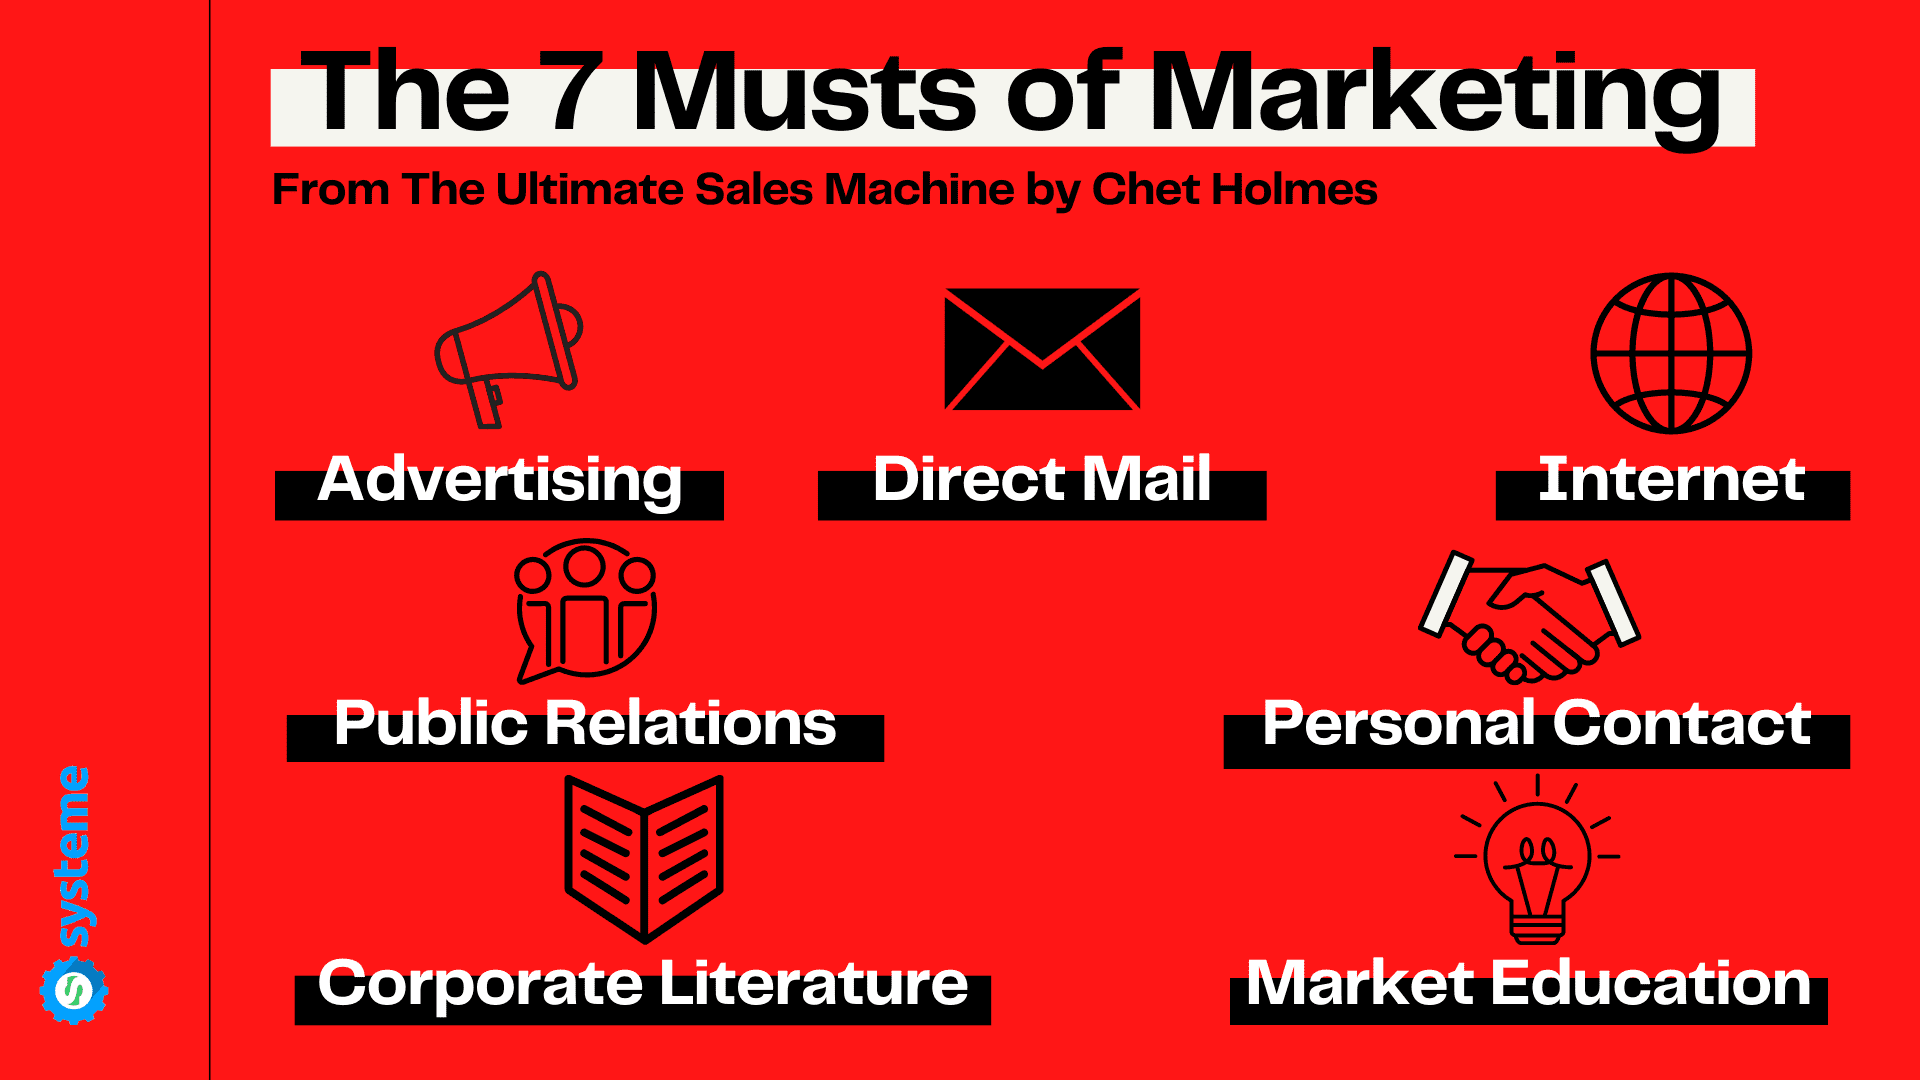 The 7 musts of marketing